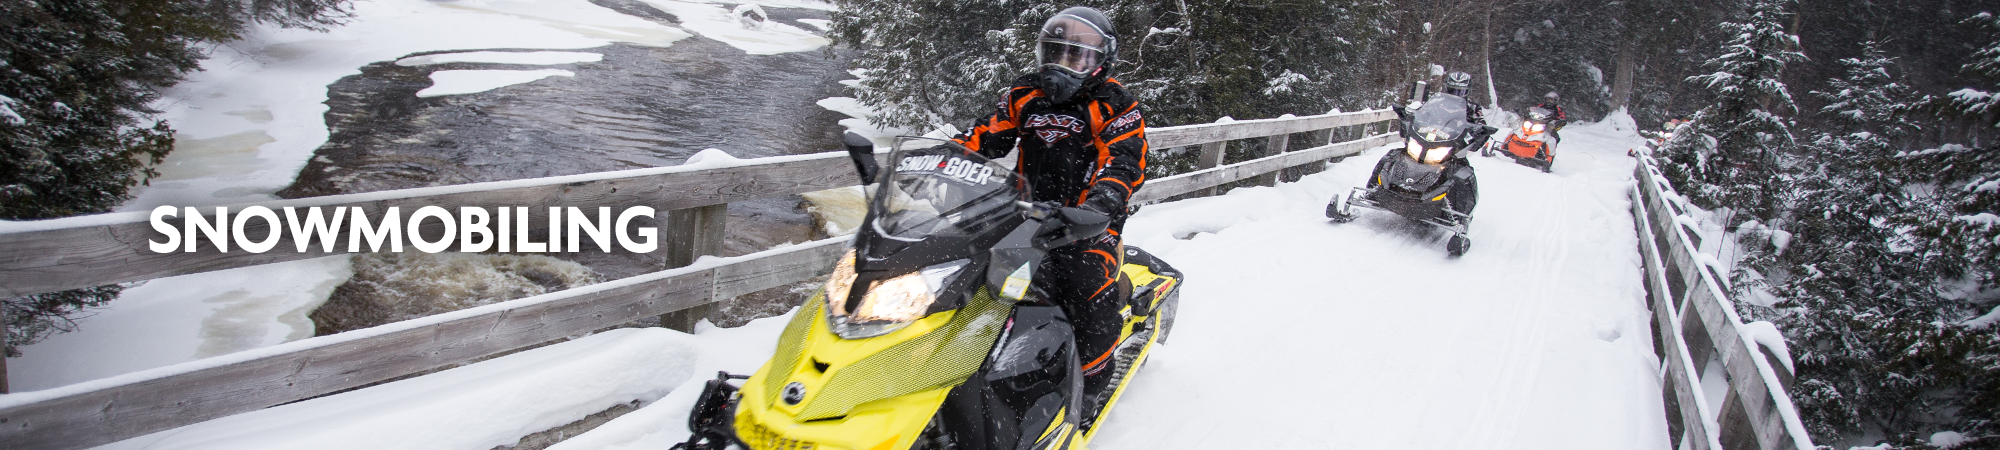 Snowmobiling-2000x450-Winter2020